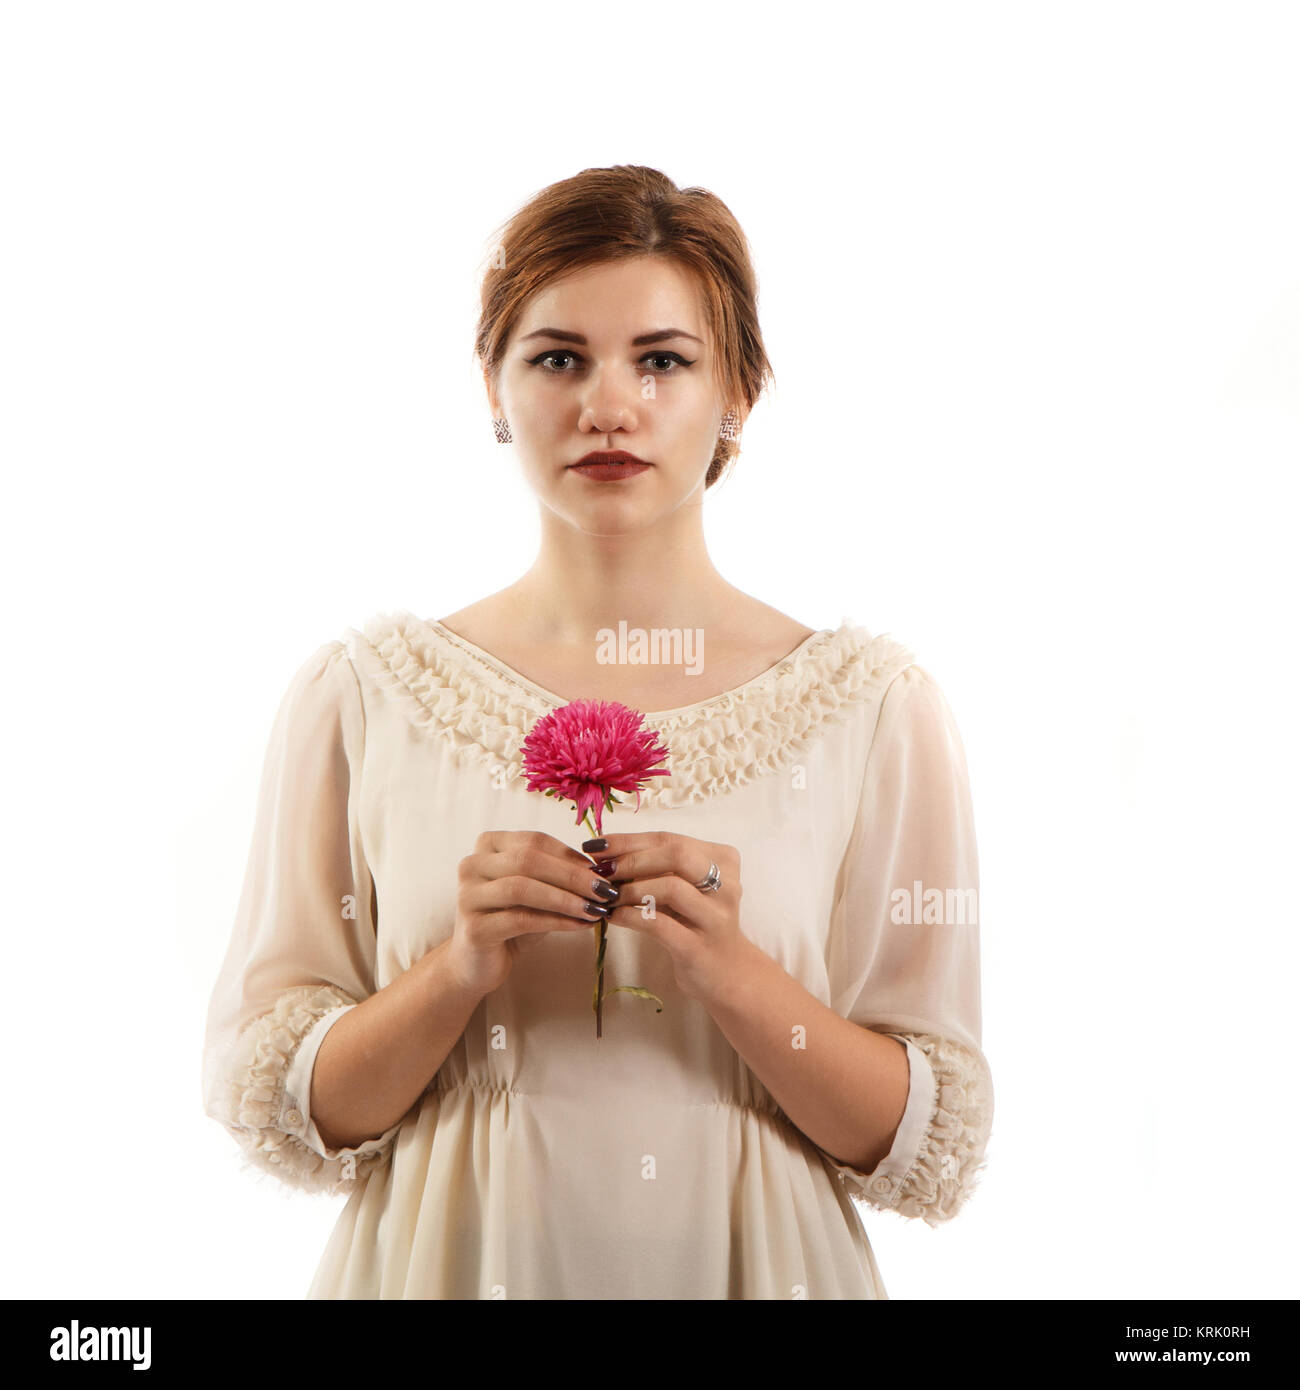 Female portrait with flower - Stock Image